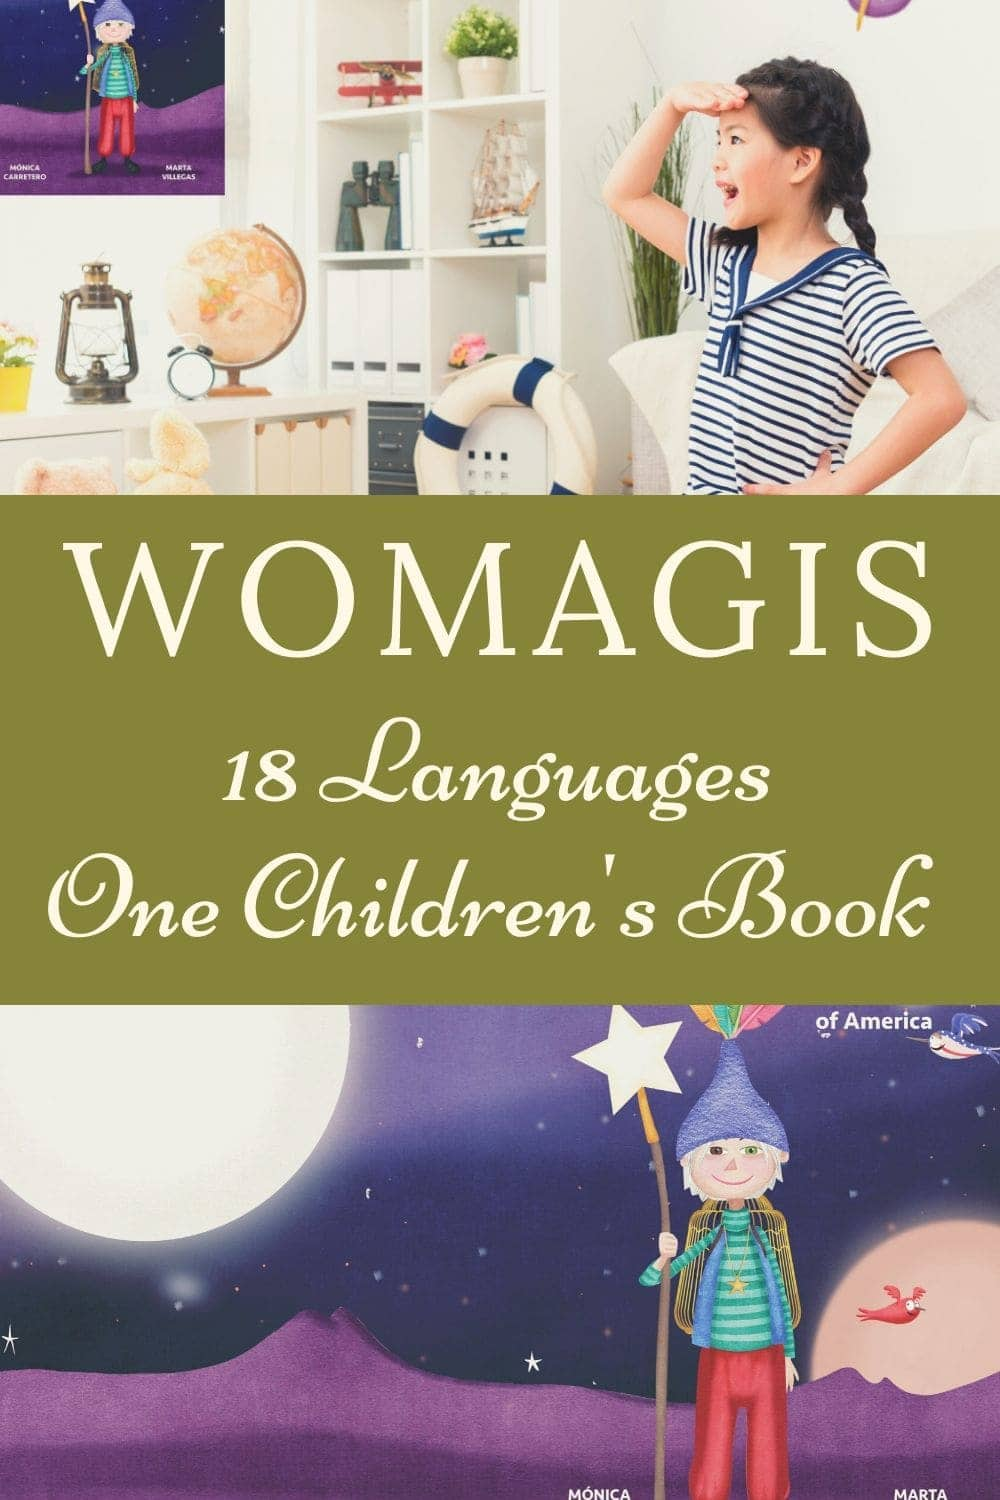 Review of Womagis